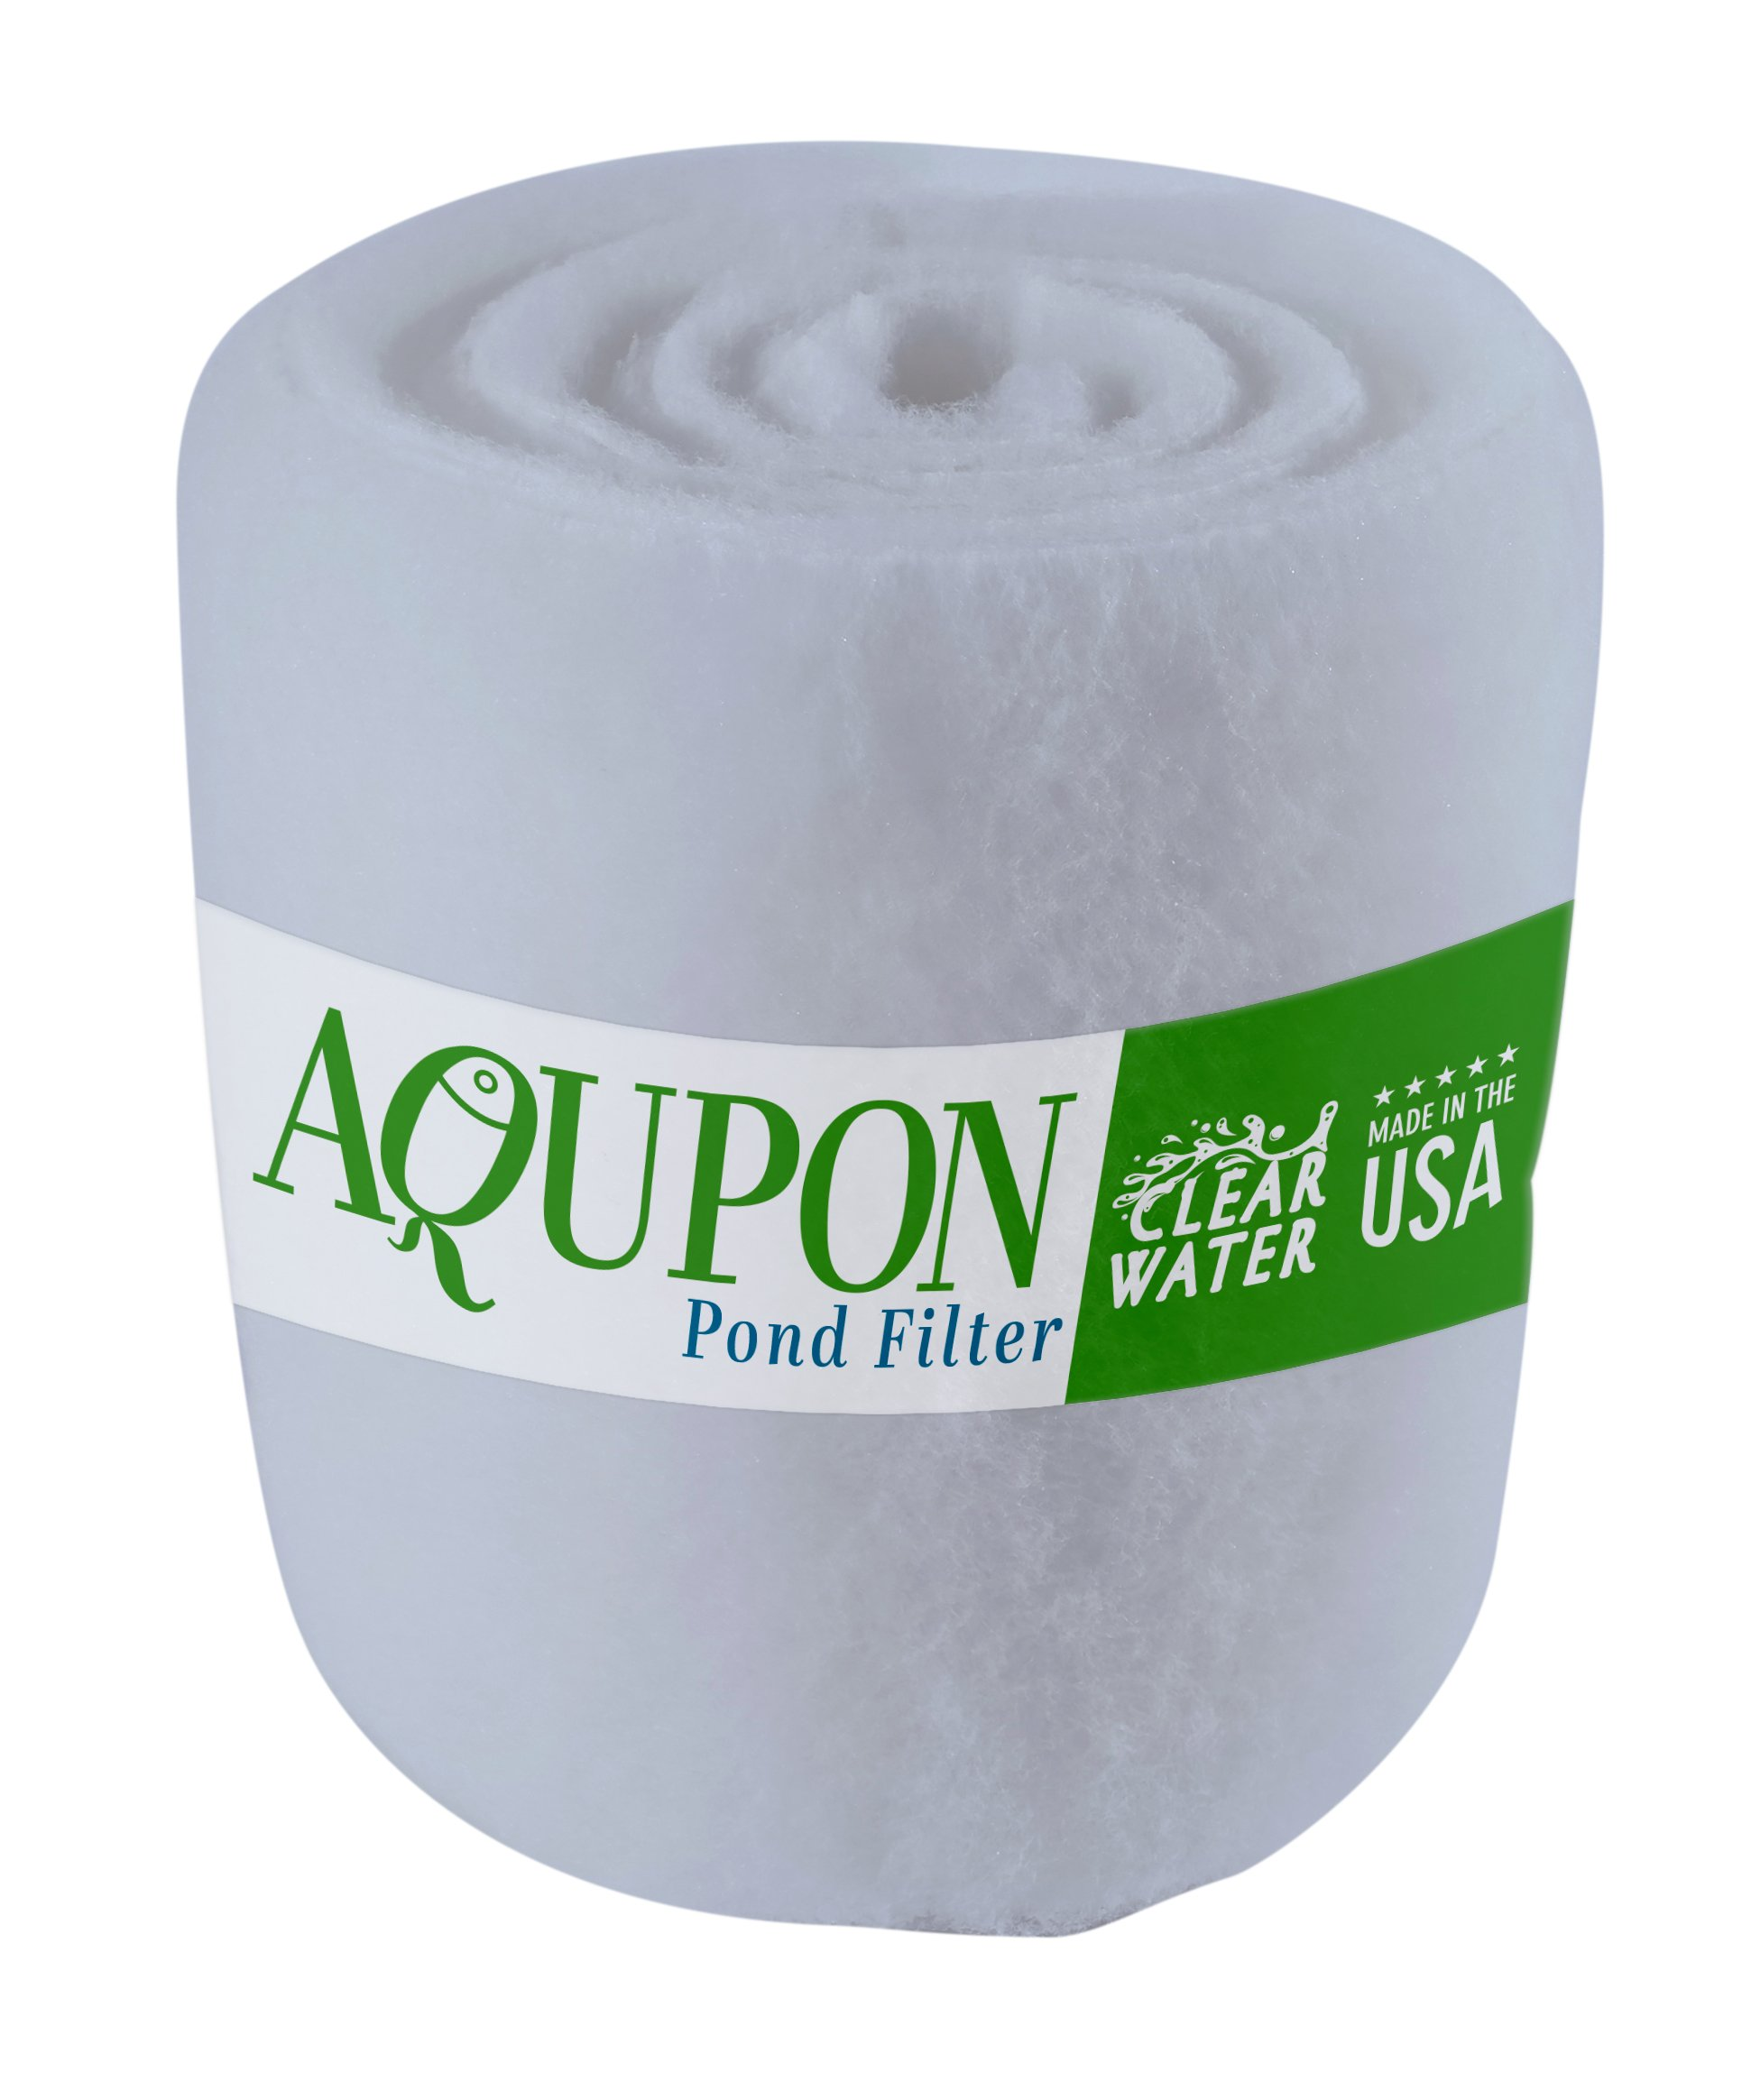 Koi Pond Filter Media Pad - Cut to Fit Roll (Dye-Free/Blue Bonded) - 1.25 Inch Thickness by AQUPON (6 ft, Dye-Free)